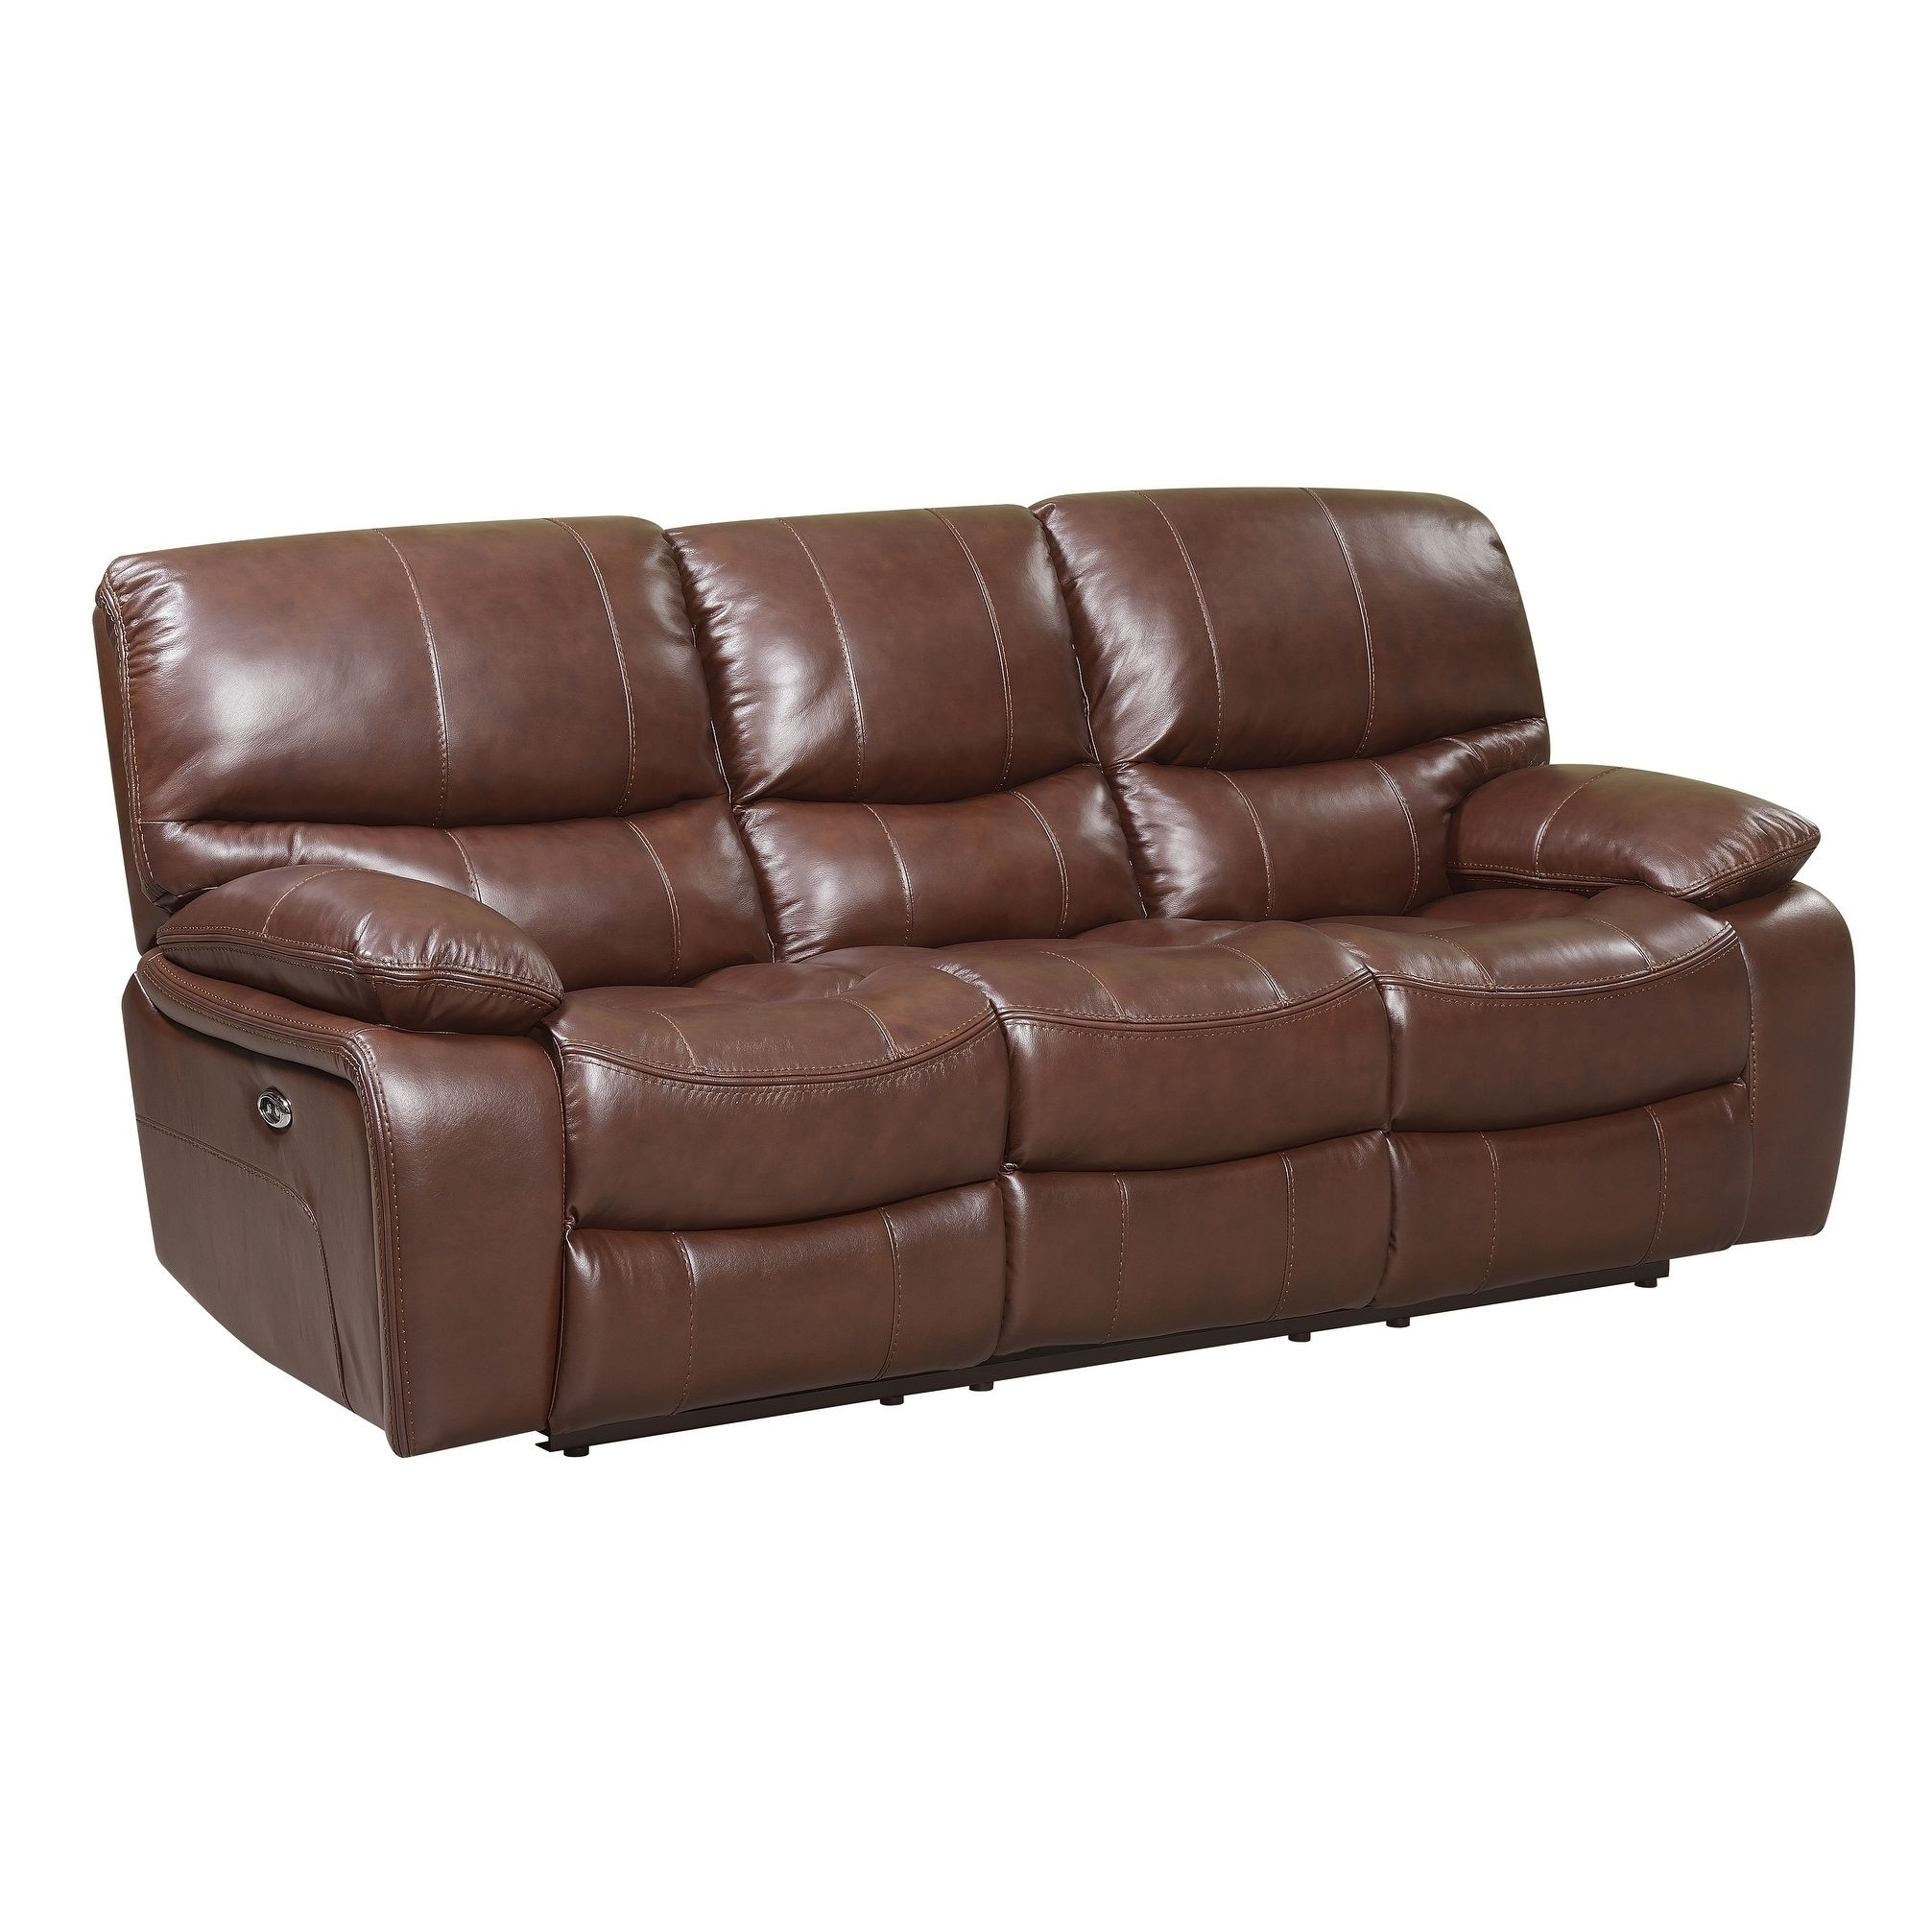 Oliver Pierce Mason Power Reclining Top Grain Italian Leather Sofa